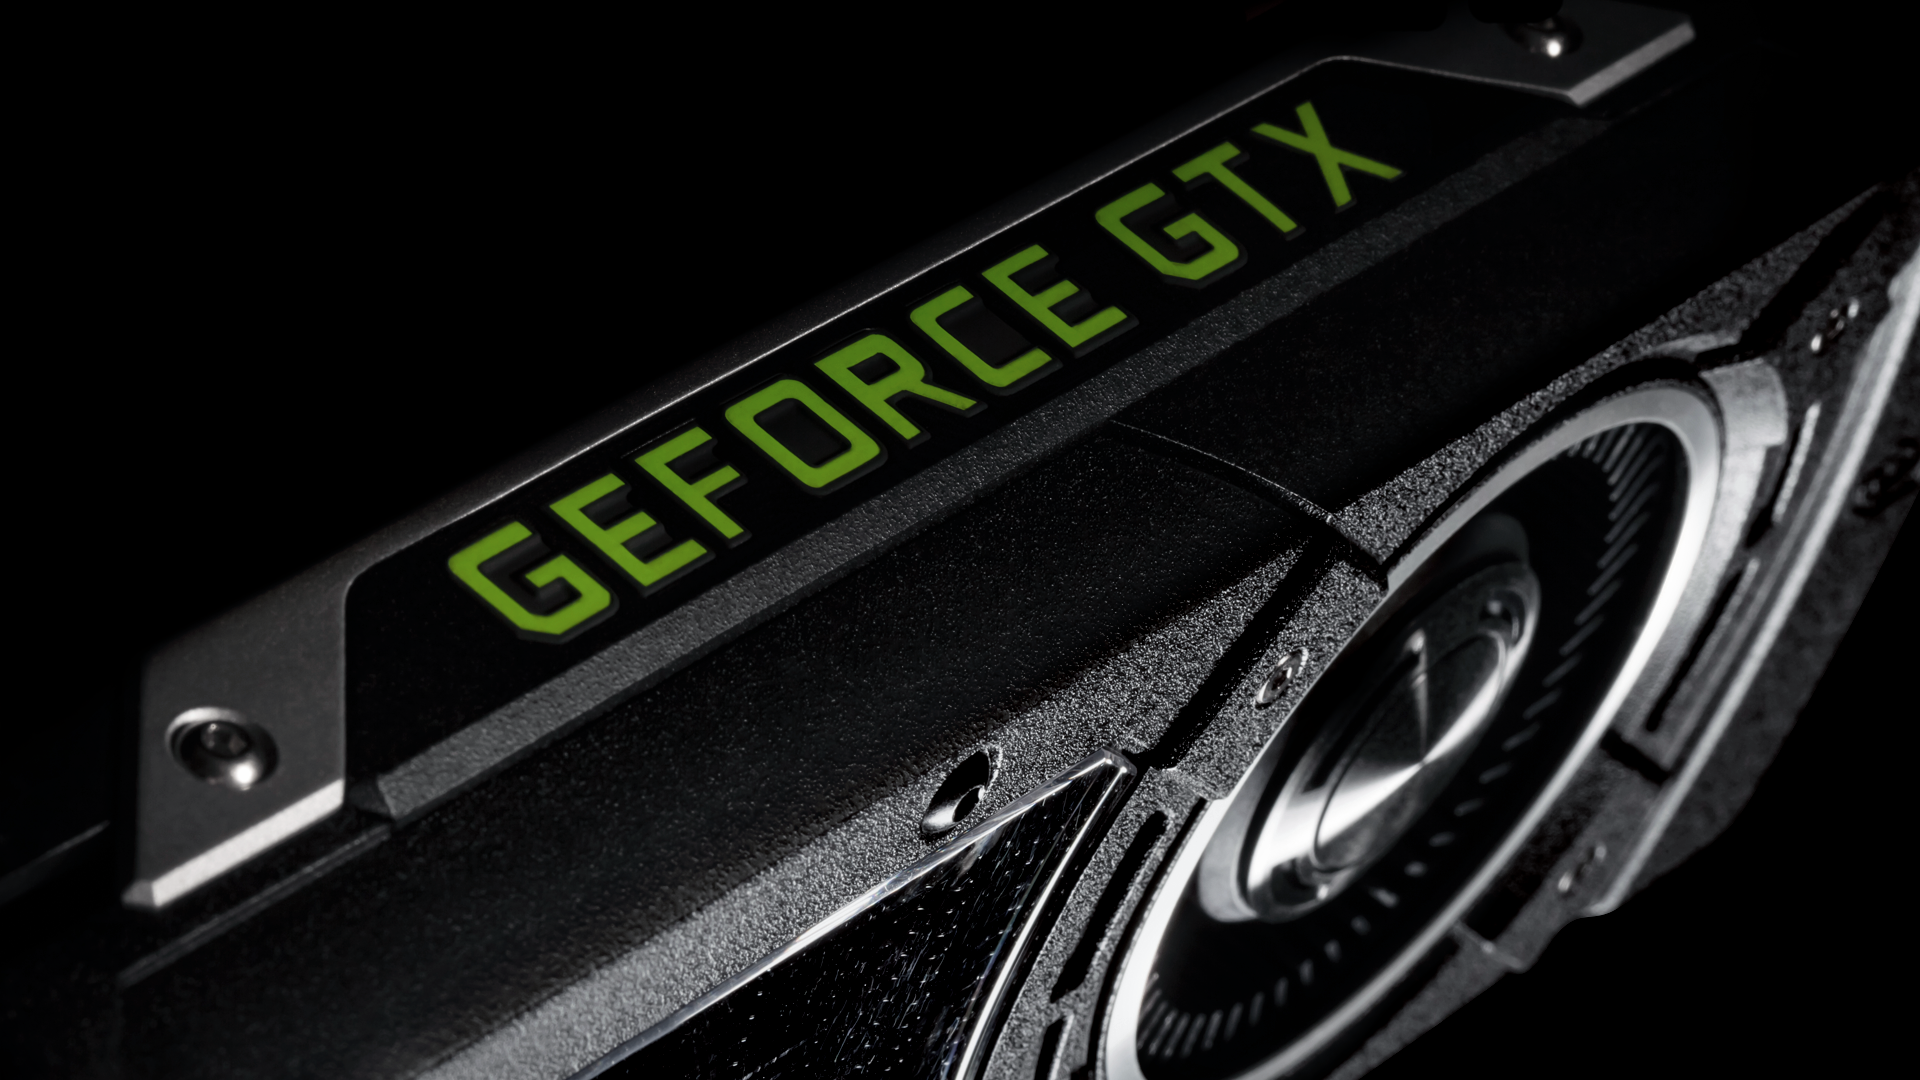 The Ultimate GPU, TITAN X. Available Now   GeForce